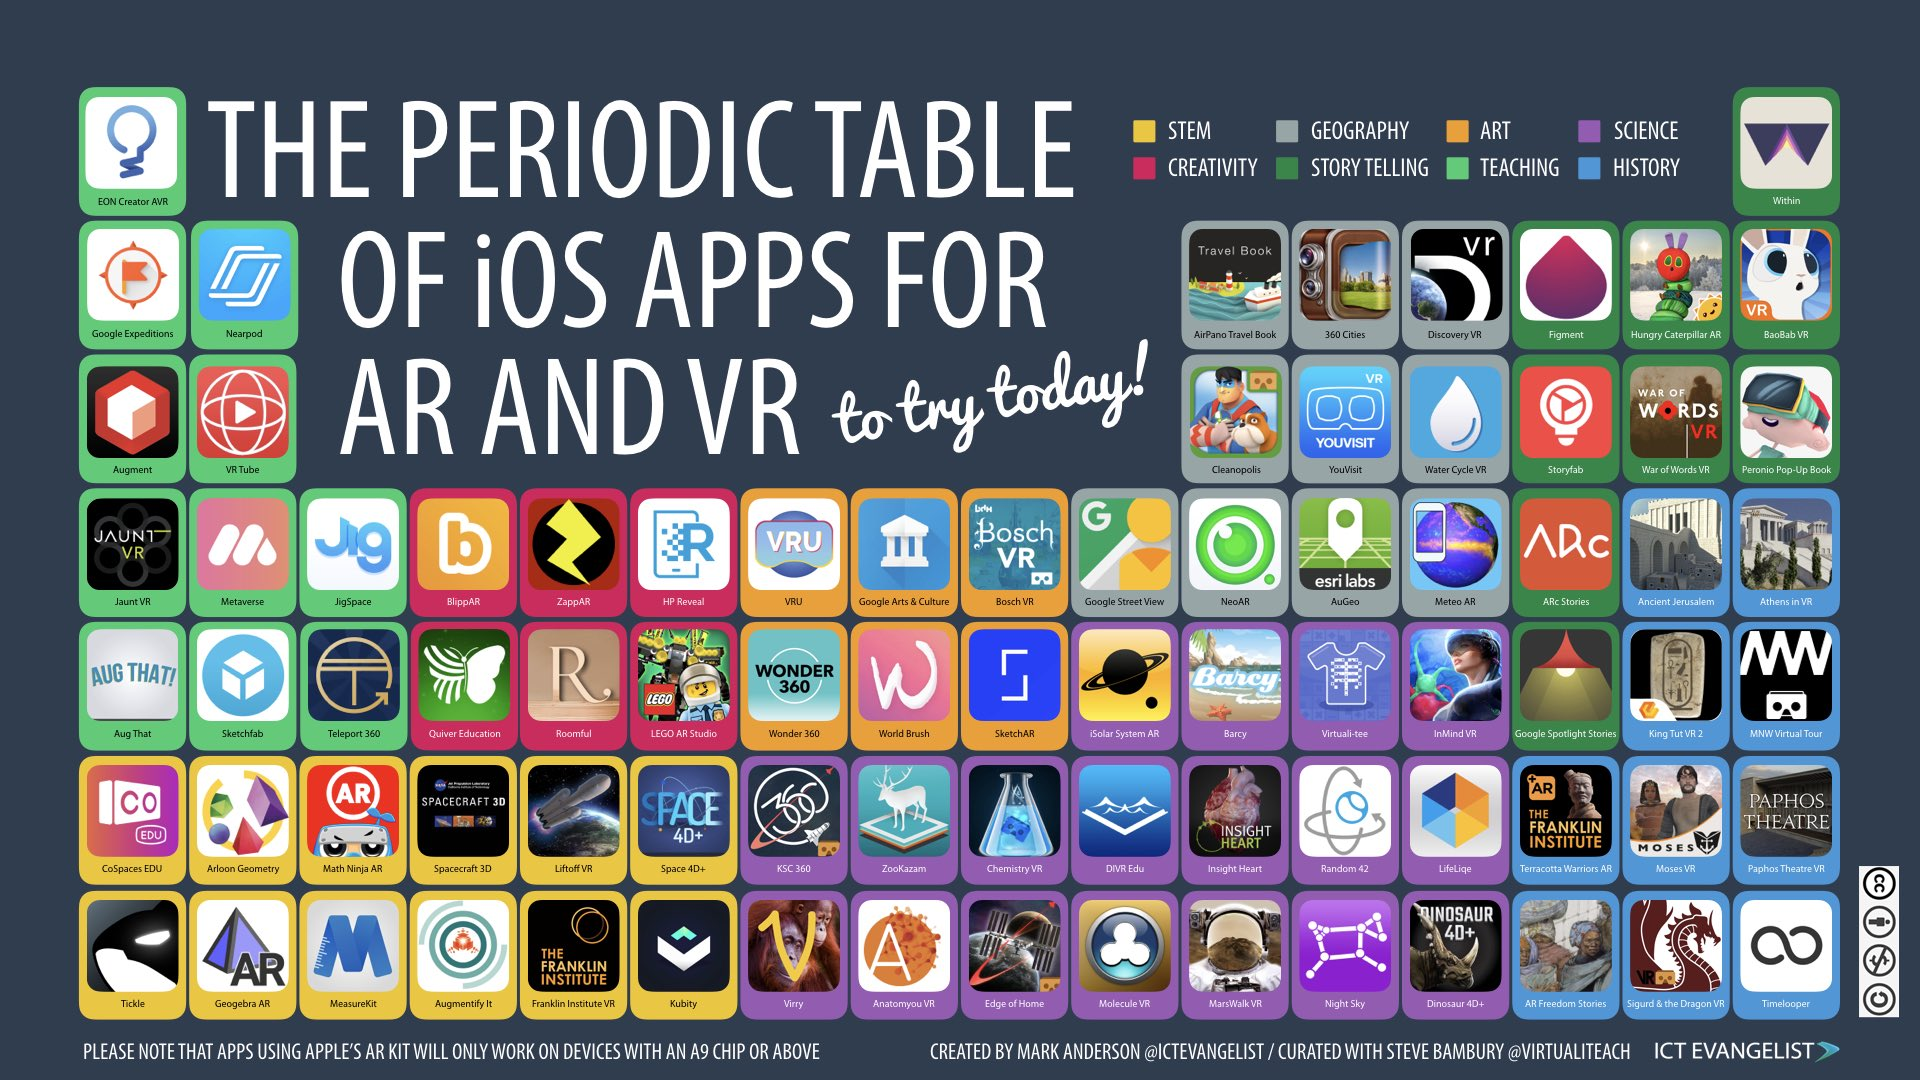 A1) So many free apps and some under $10 available now. Check these out! Kids love the #MergeCube! Check out 👉YouTube SteveBamburyVR Top 5 Apps for MergeCube AnatomyAR, 3DMuseumViewer, Galaxtic Explorer & more! #CrazyPLN https://t.co/zUosjyHWWp